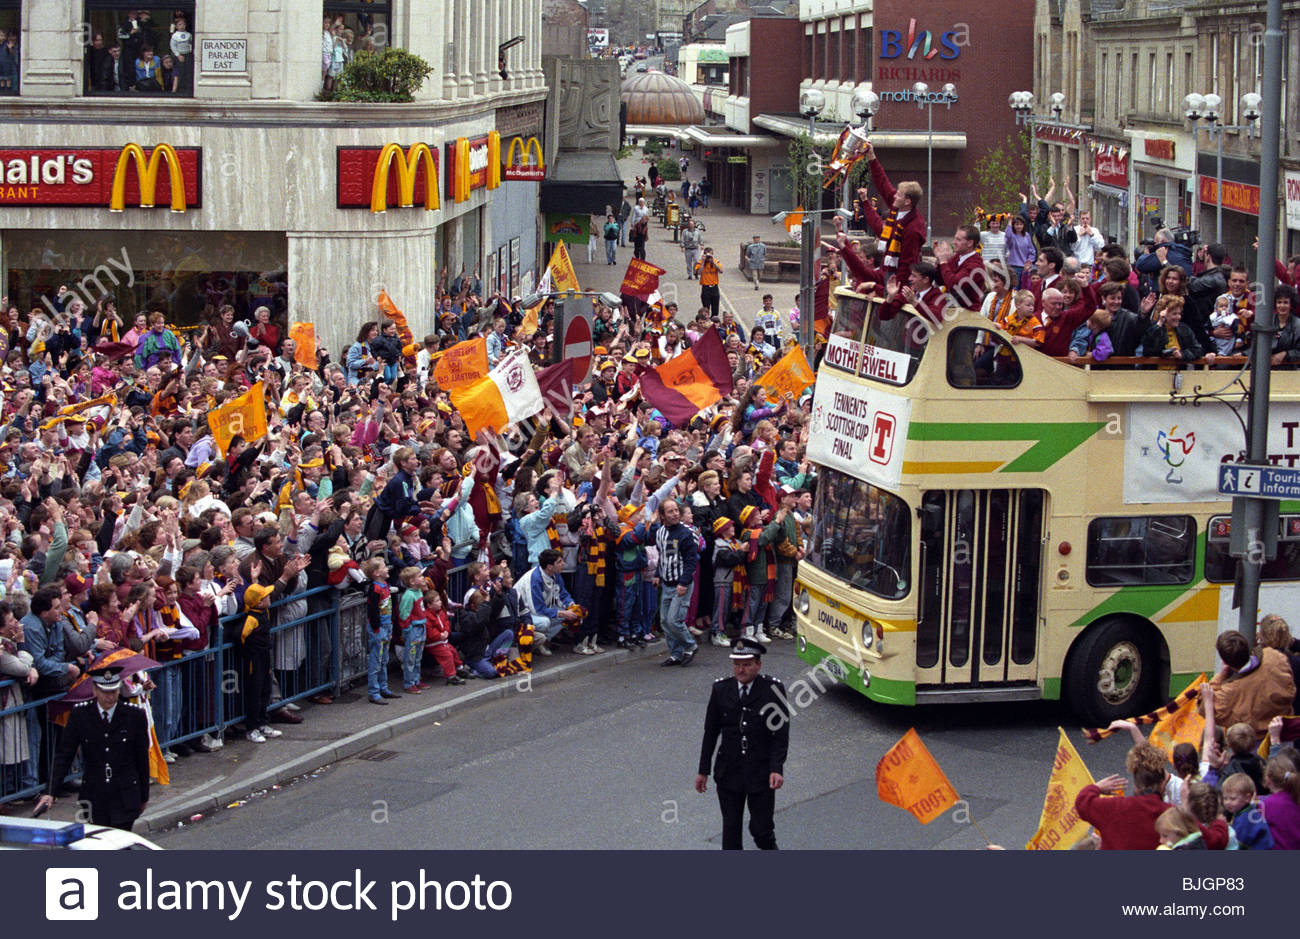 MAY 1991 MOTHERWELL The Motherwell players parade the Scottish Cup about the town after beating Dundee Utd in the - Stock Image